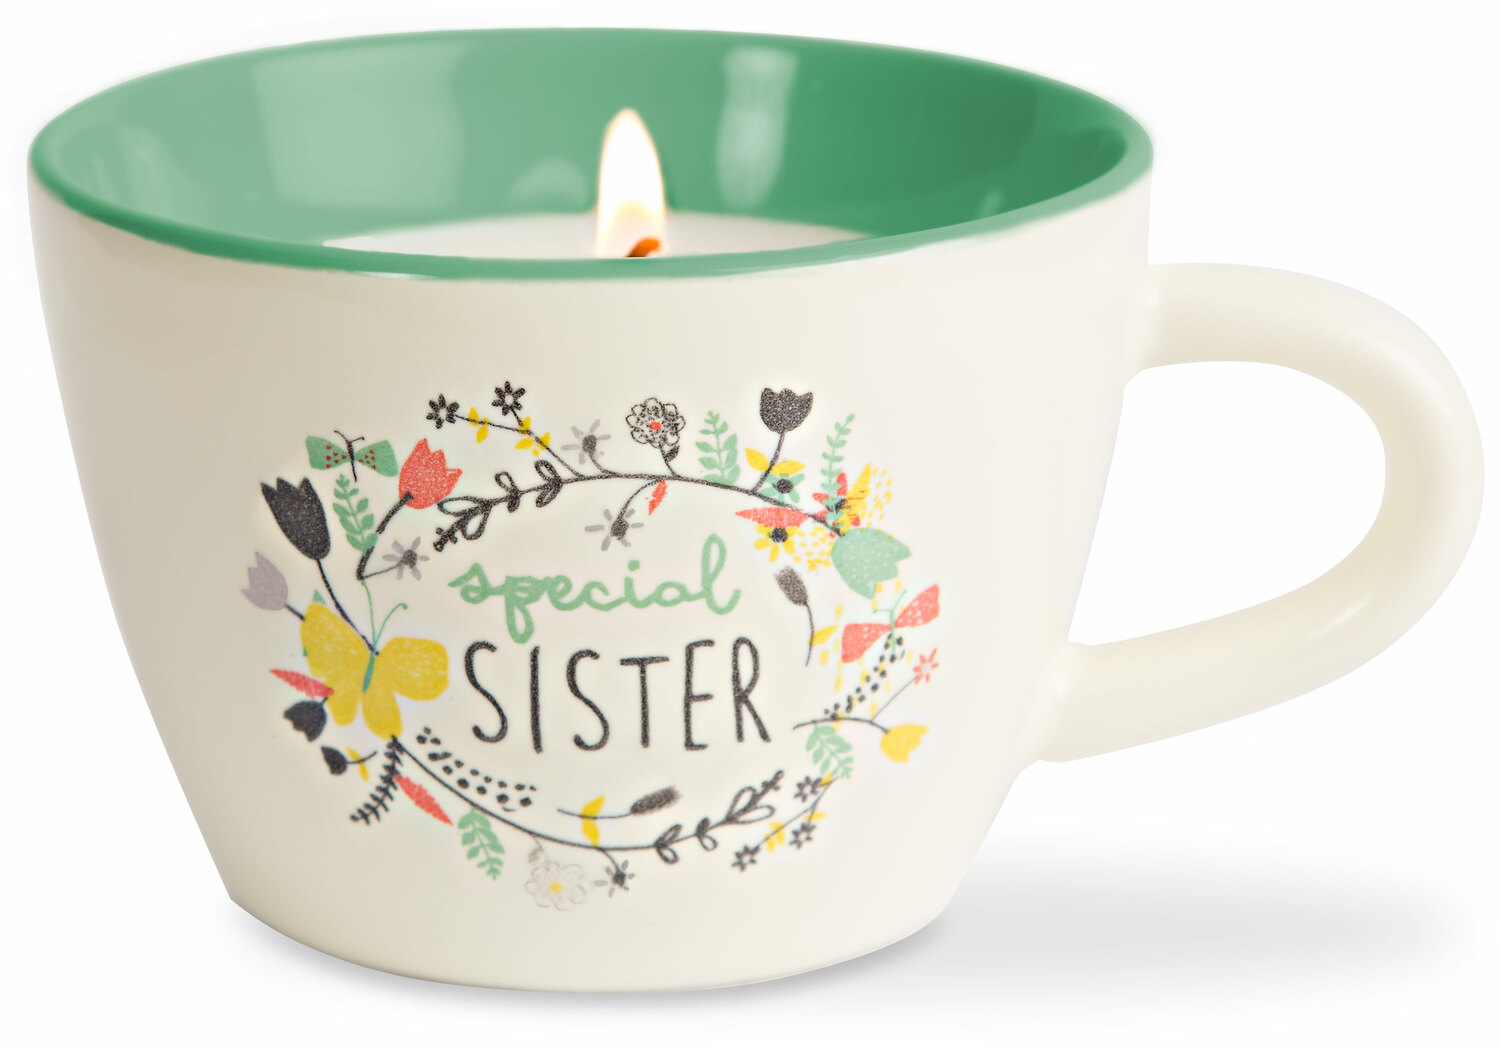 Sister by Bloom by Amylee Weeks - Sister - 5.7 oz. Soy Wax Teacup Candle Scent: Serenity